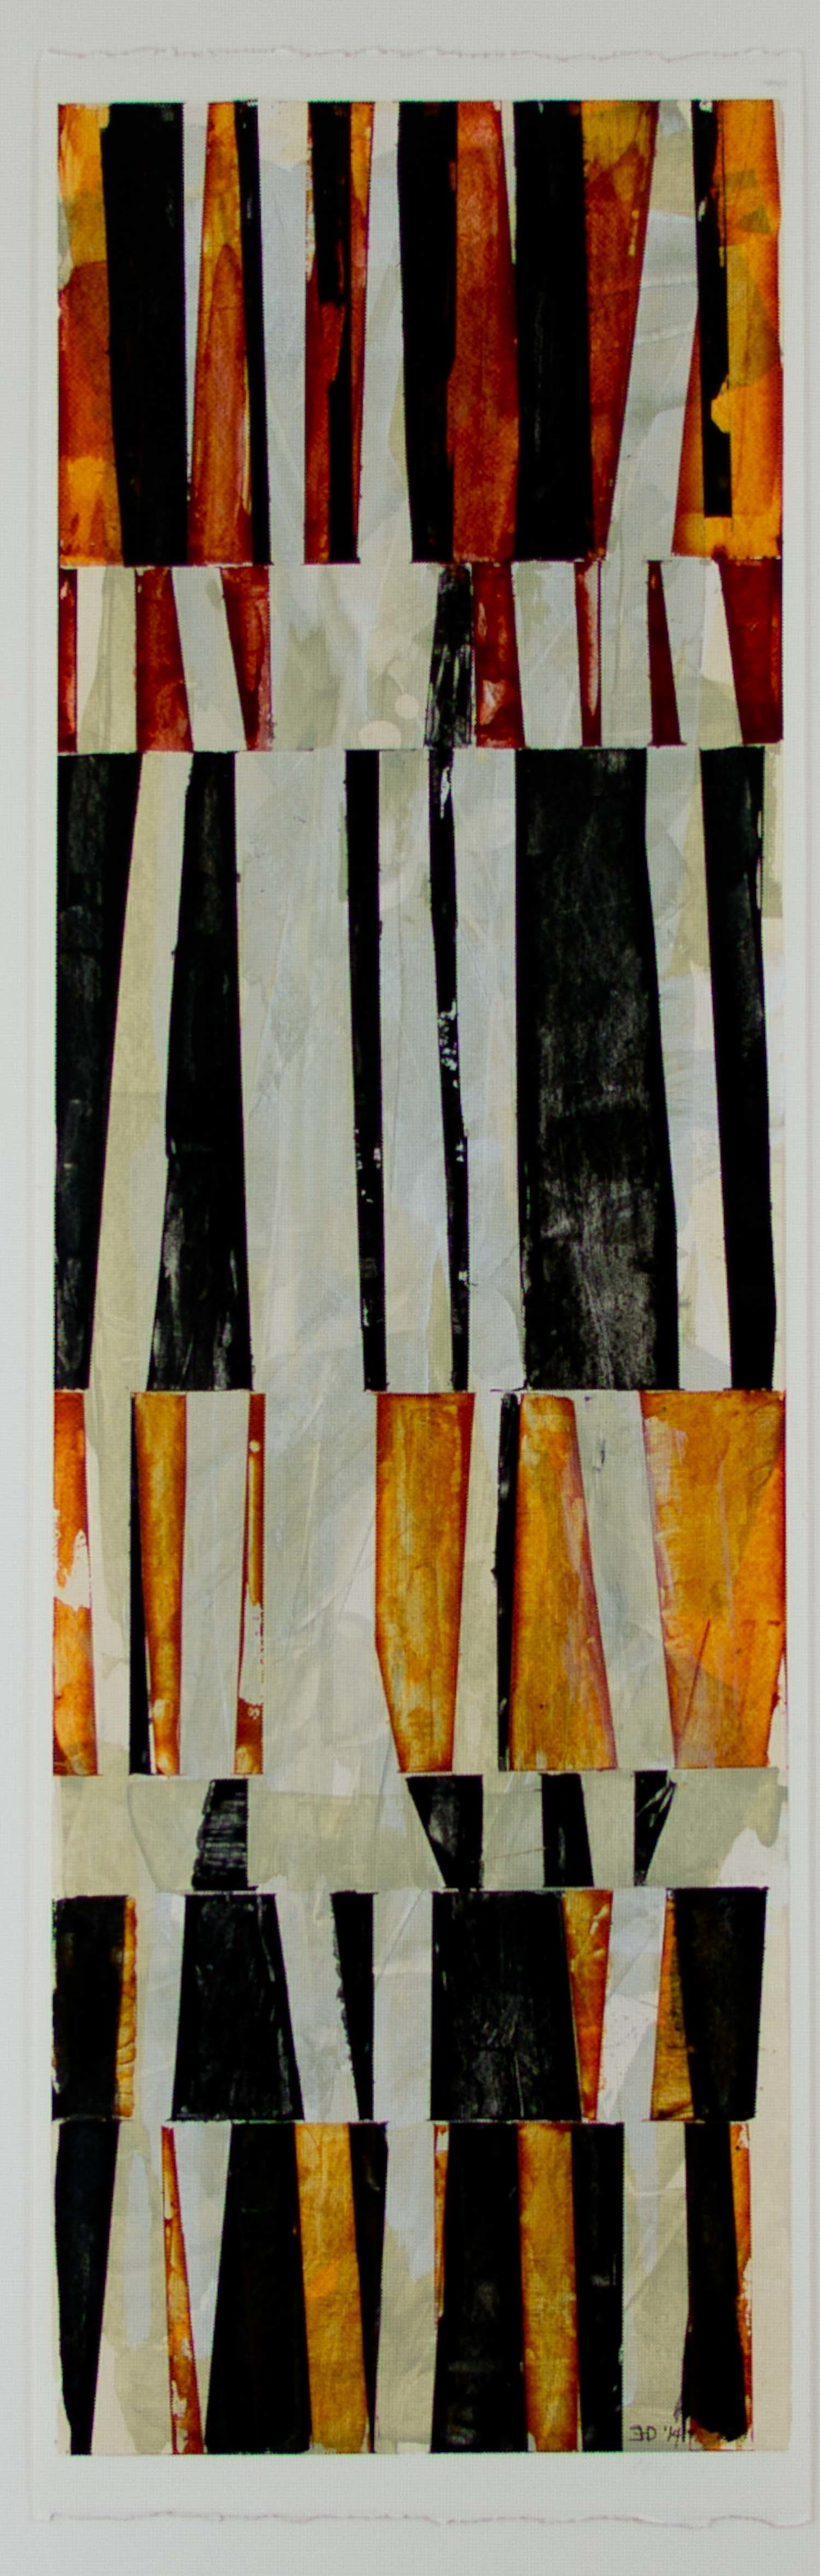 "Between the Lines #1   acrylic on paper, matted and framed, 16 3/8"" x 32""  $400"